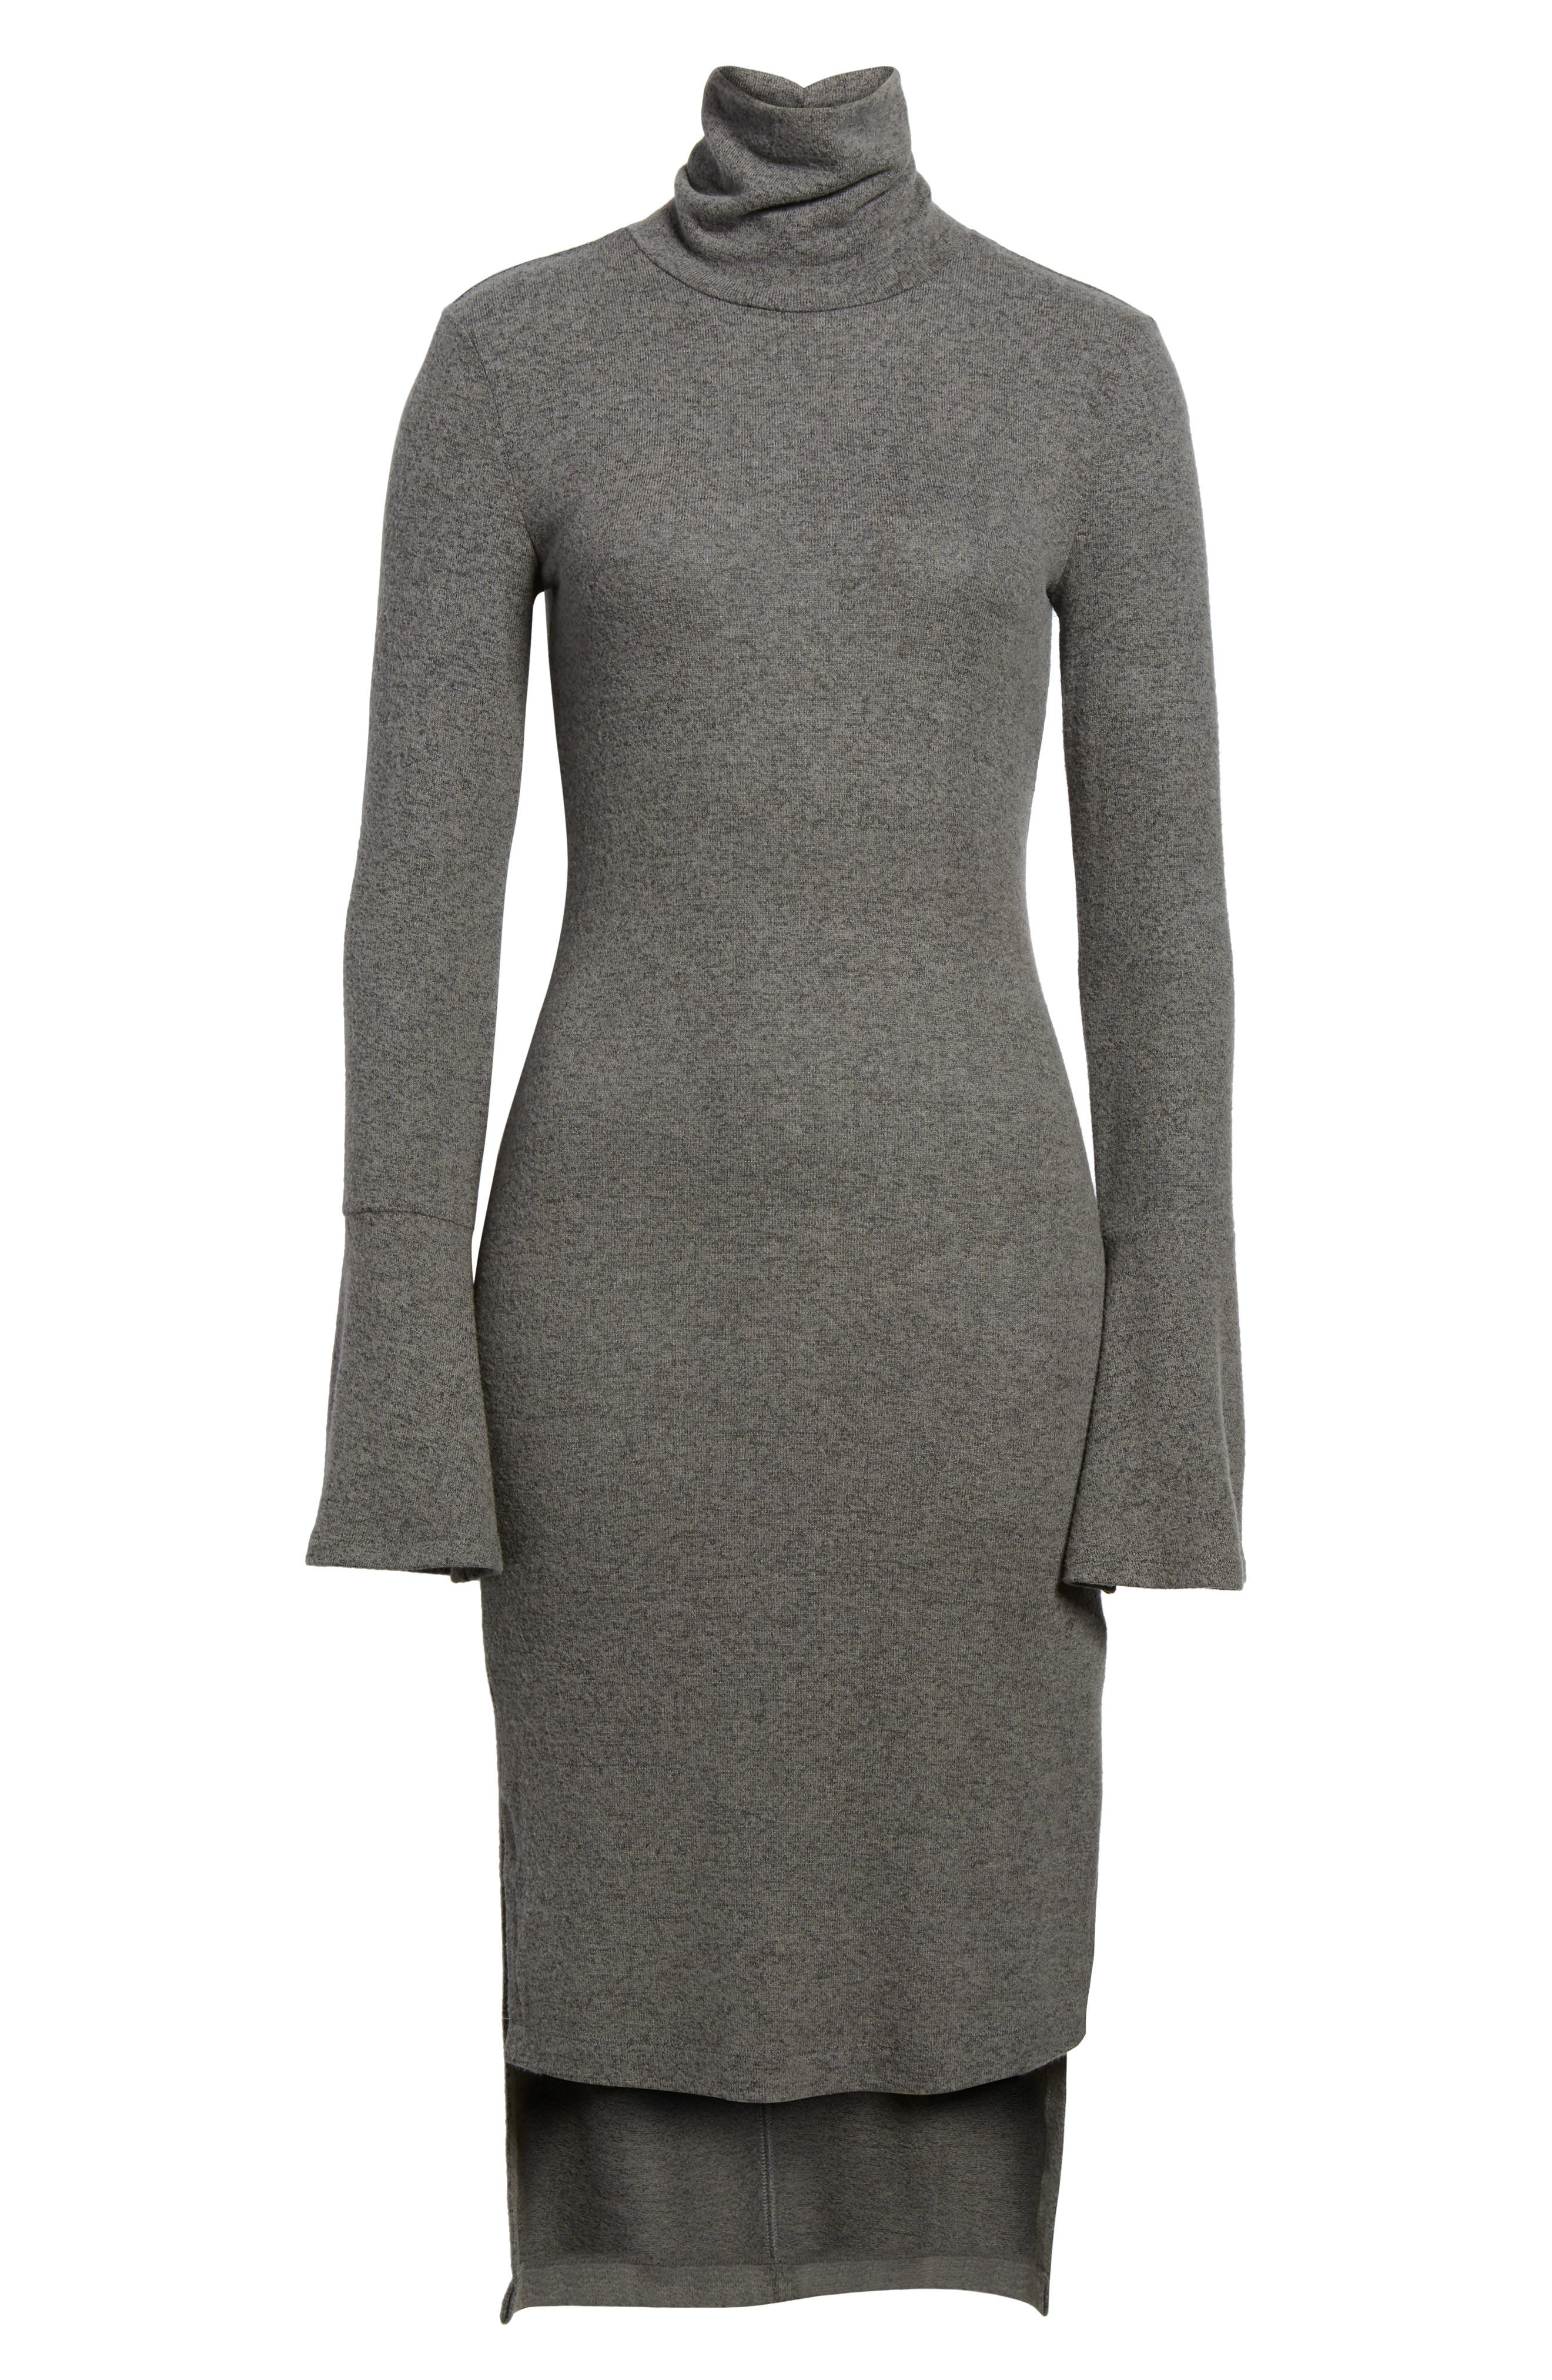 Bell Sleeve Turtleneck Midi Dress,                             Alternate thumbnail 6, color,                             020